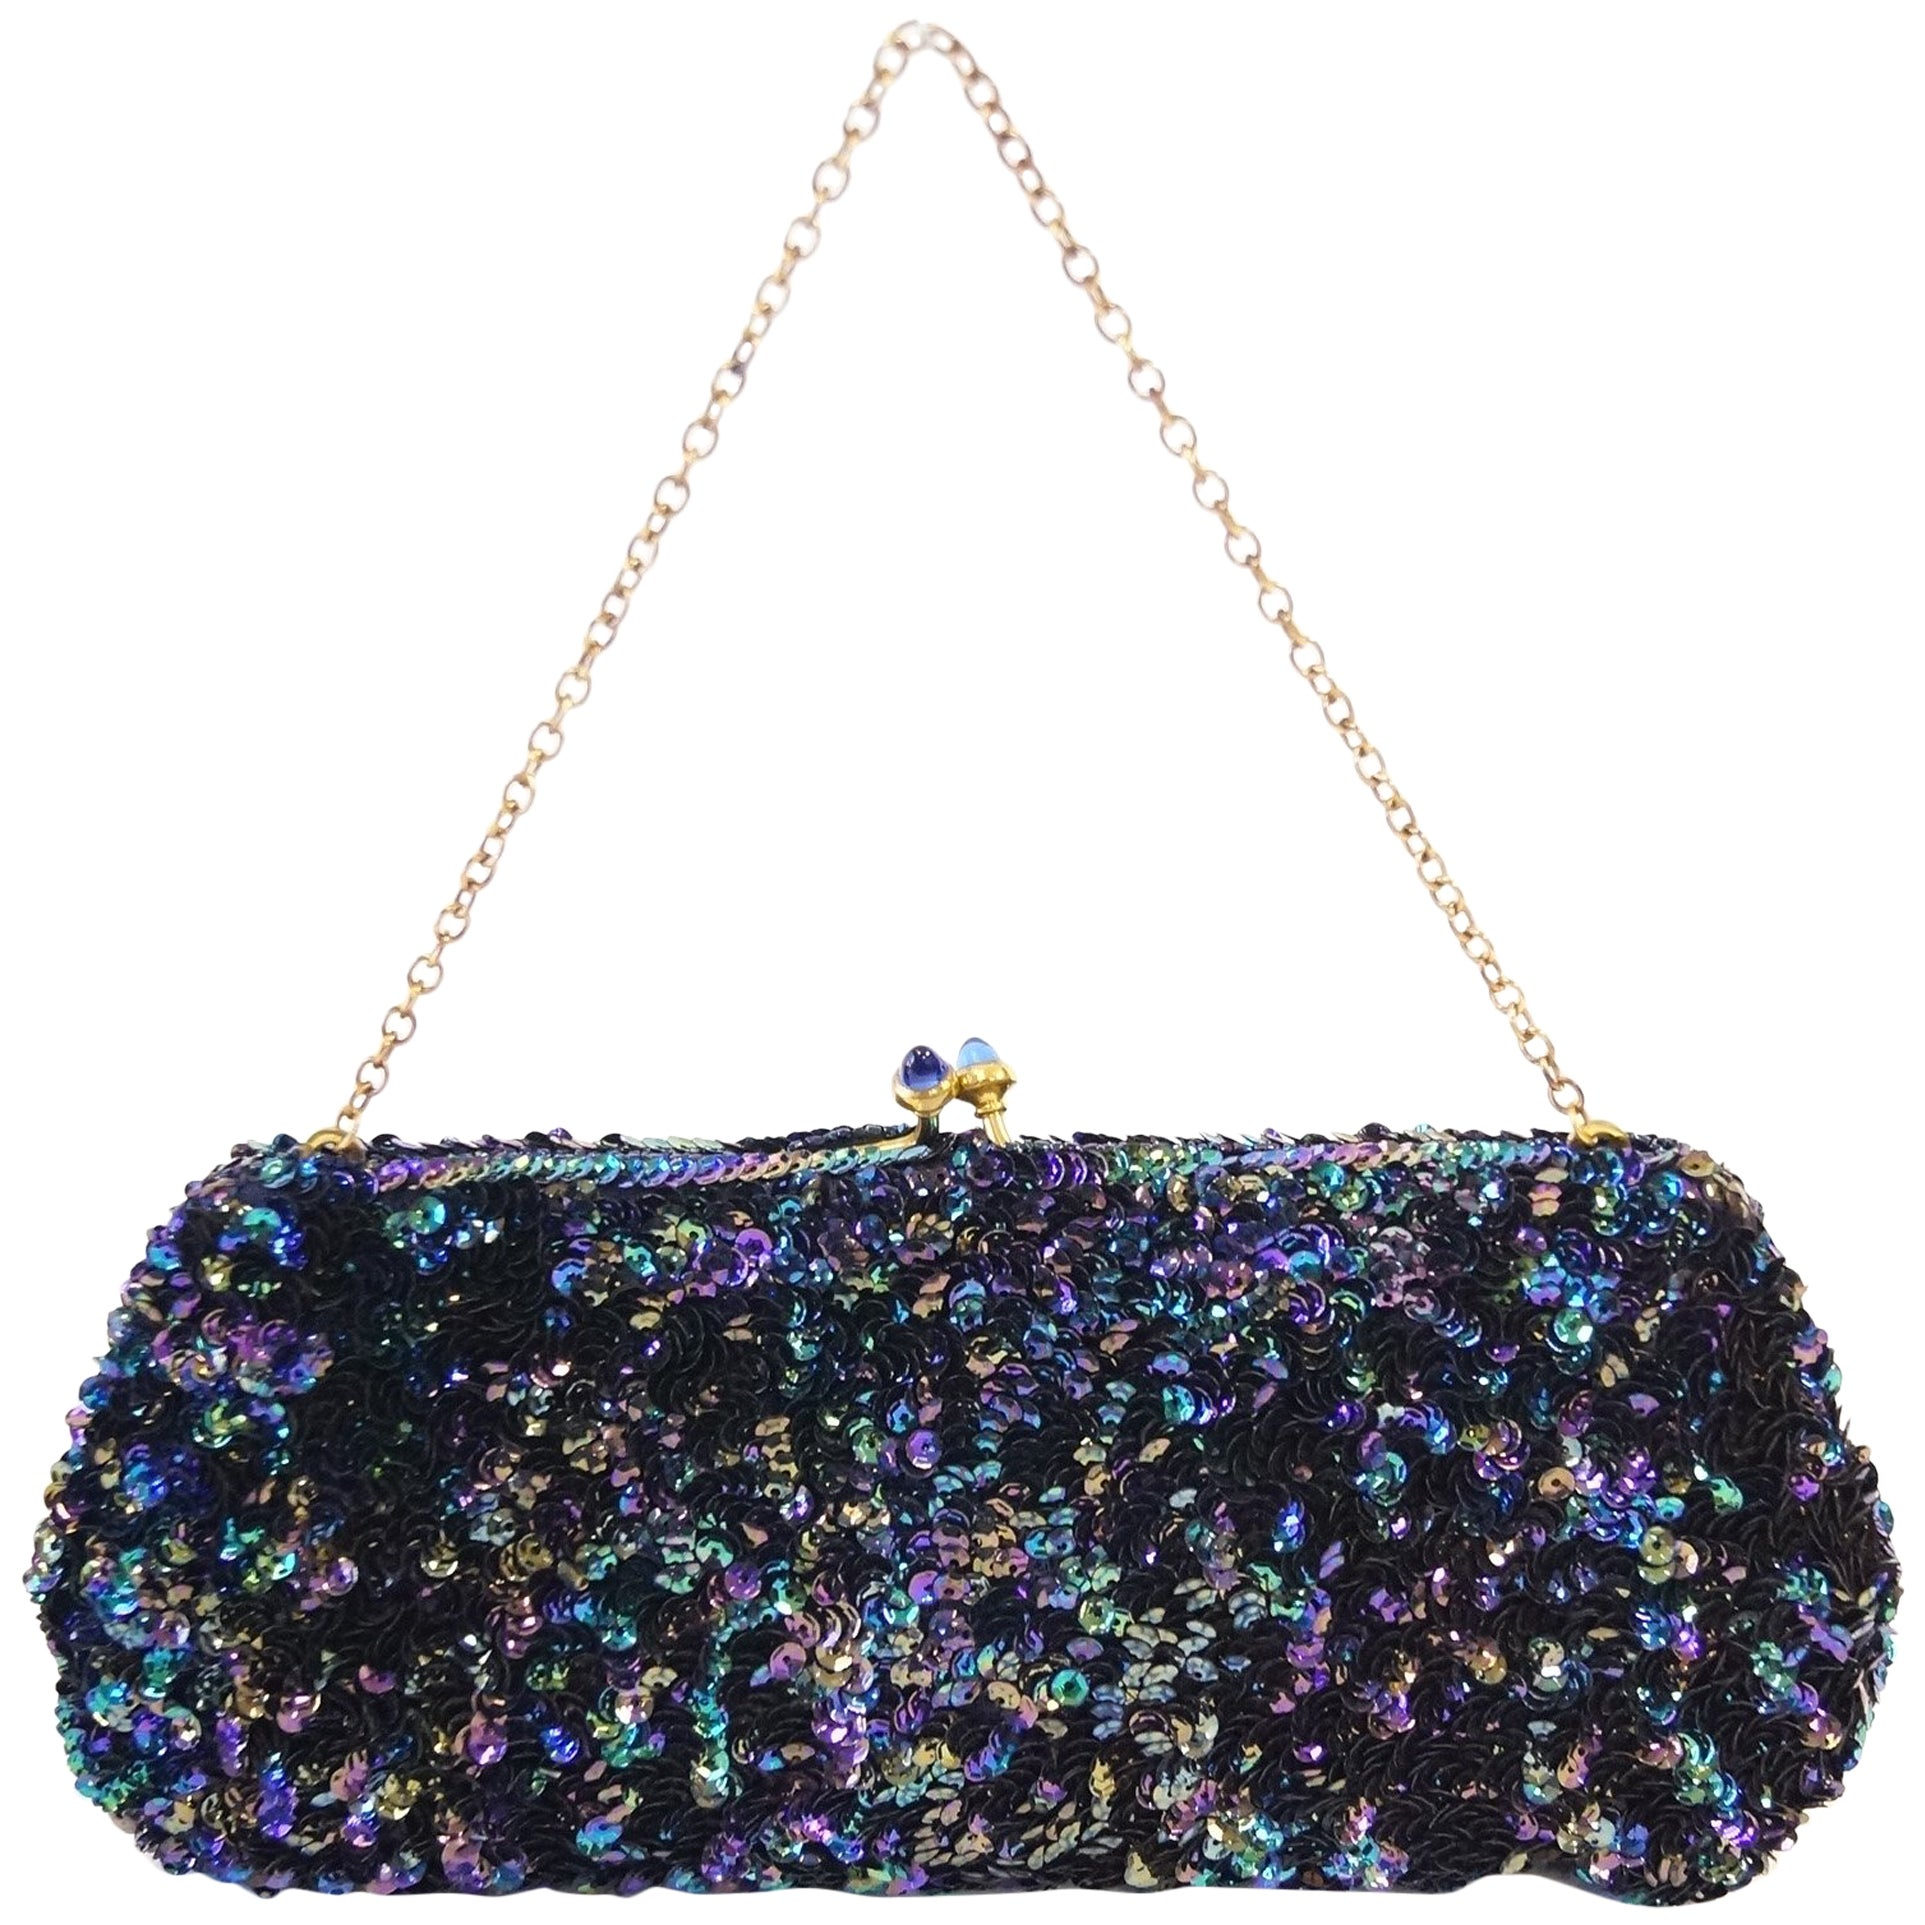 9fcba3a6a8 Josef of Hollywood Peacock Iridescent Sequin Clutch